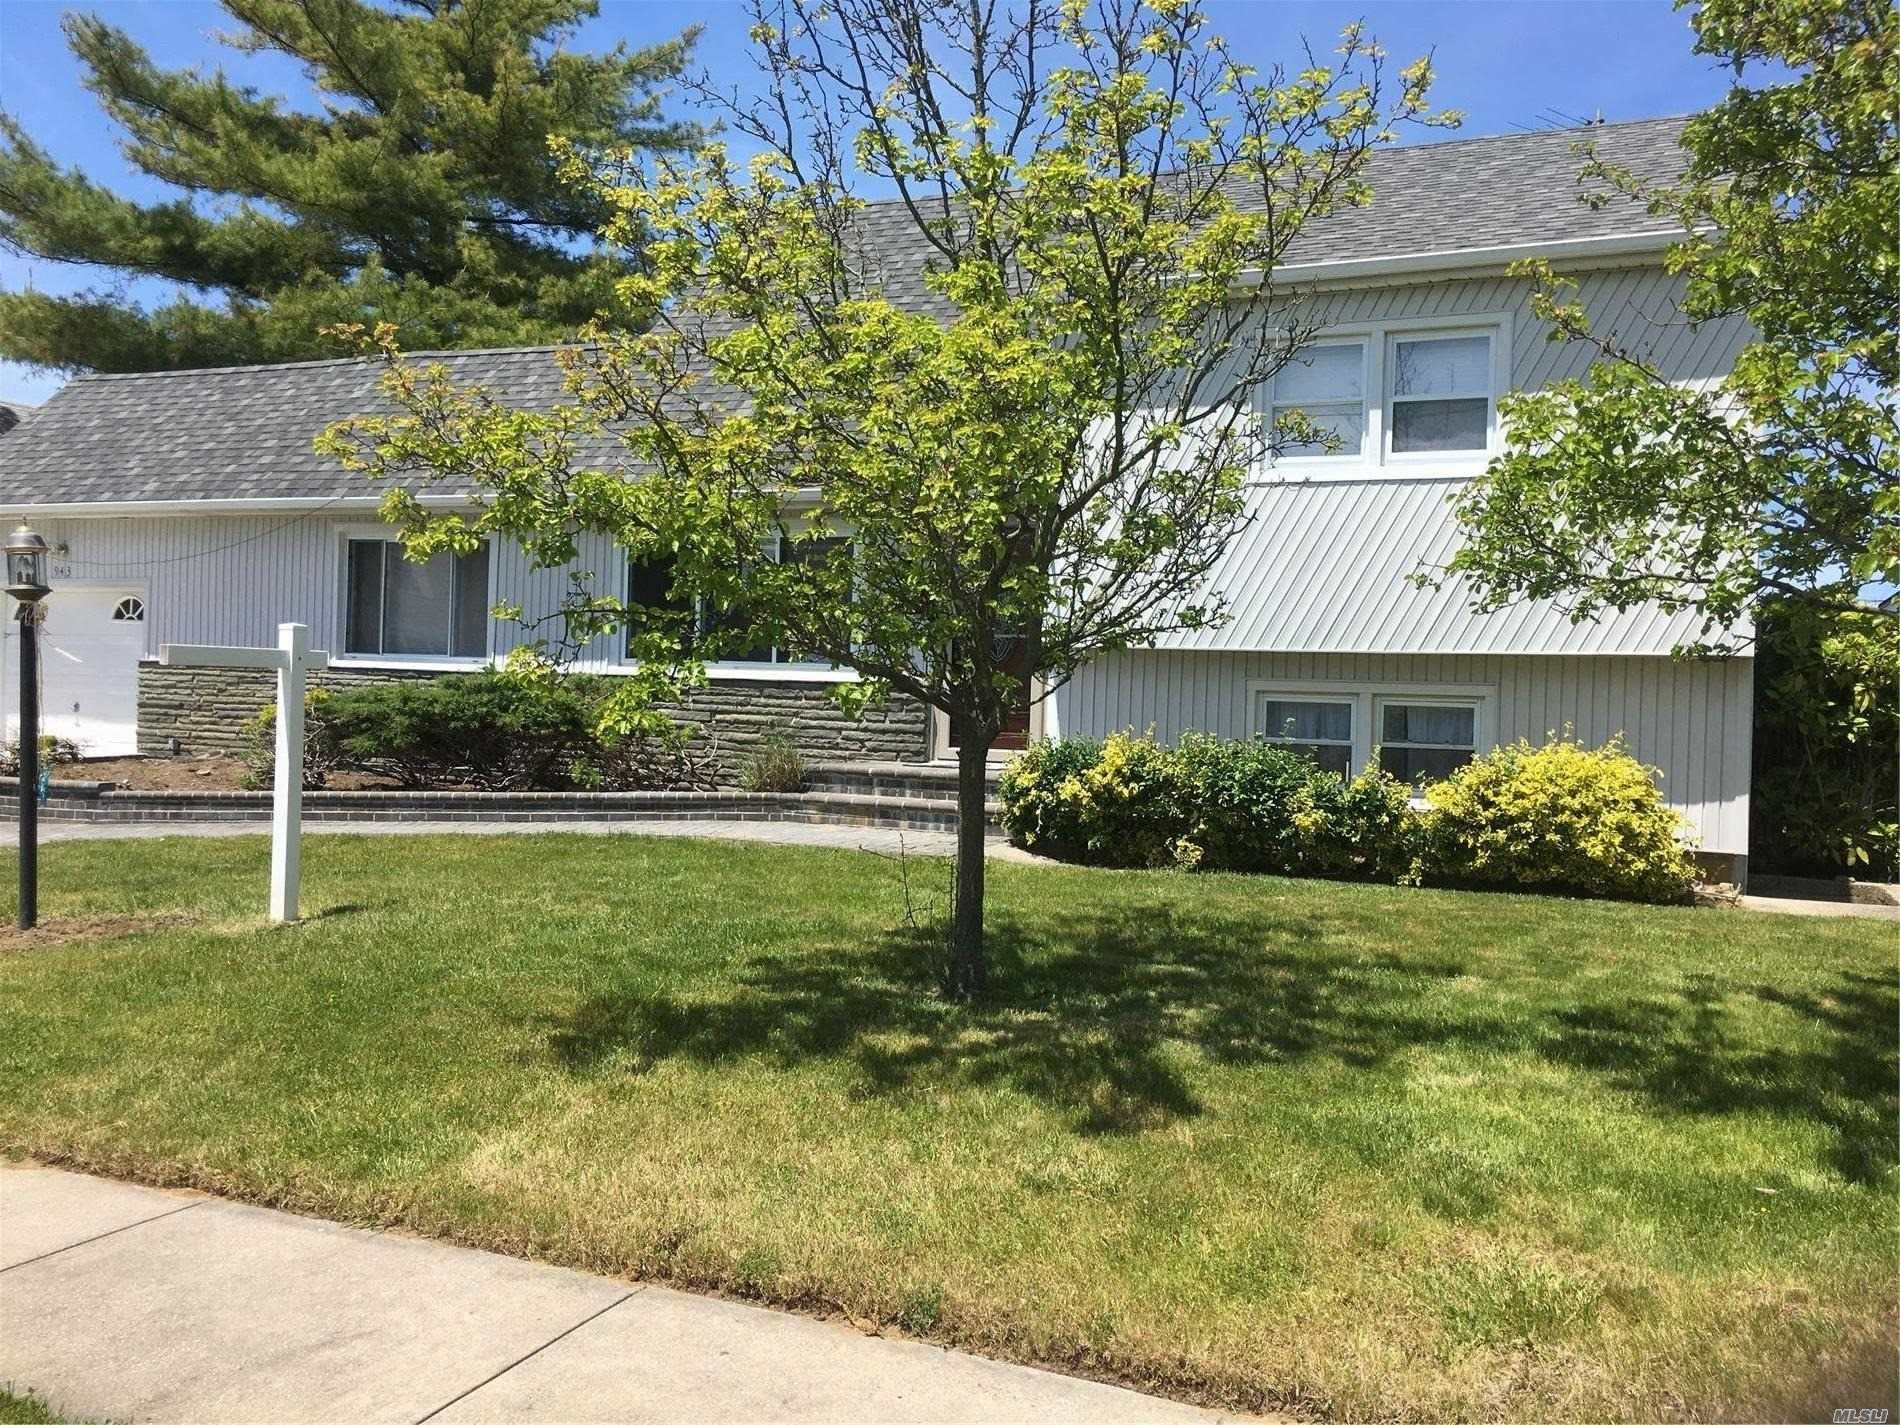 943 Hastings St, Baldwin, NY 11510 - MLS#: 3217597